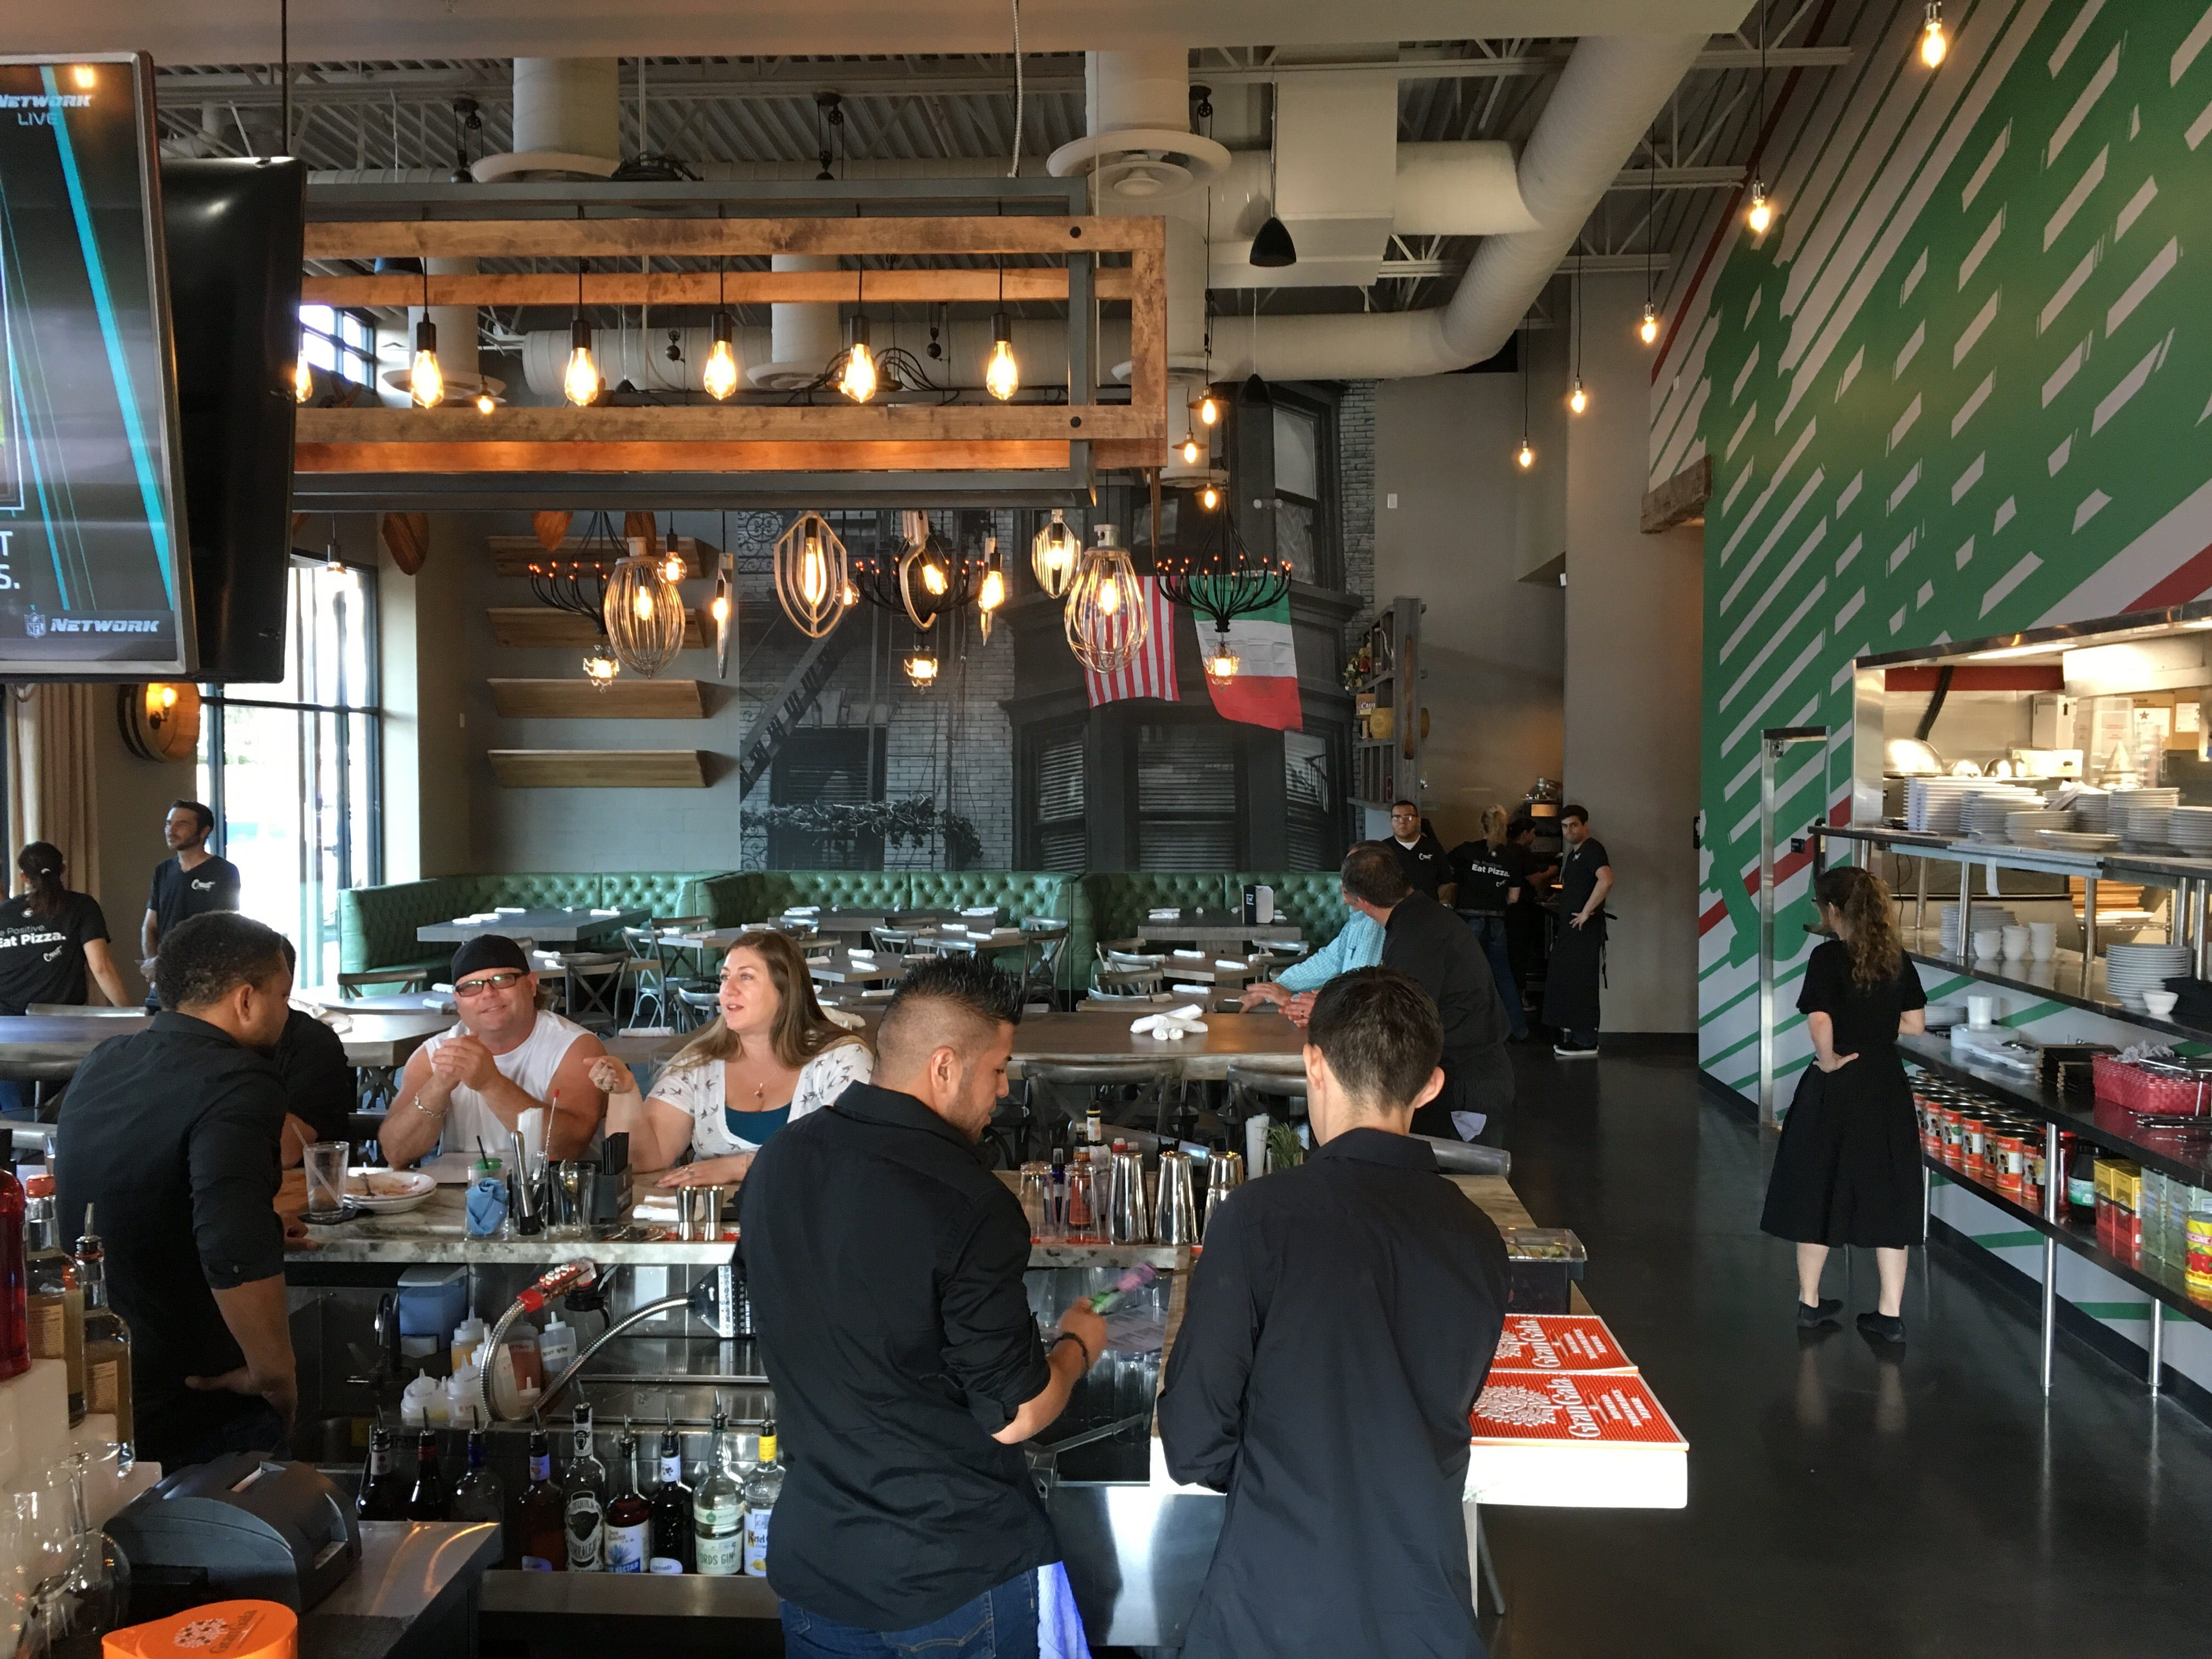 A look at the interior of Crust Pizzeria in Scottsdale.